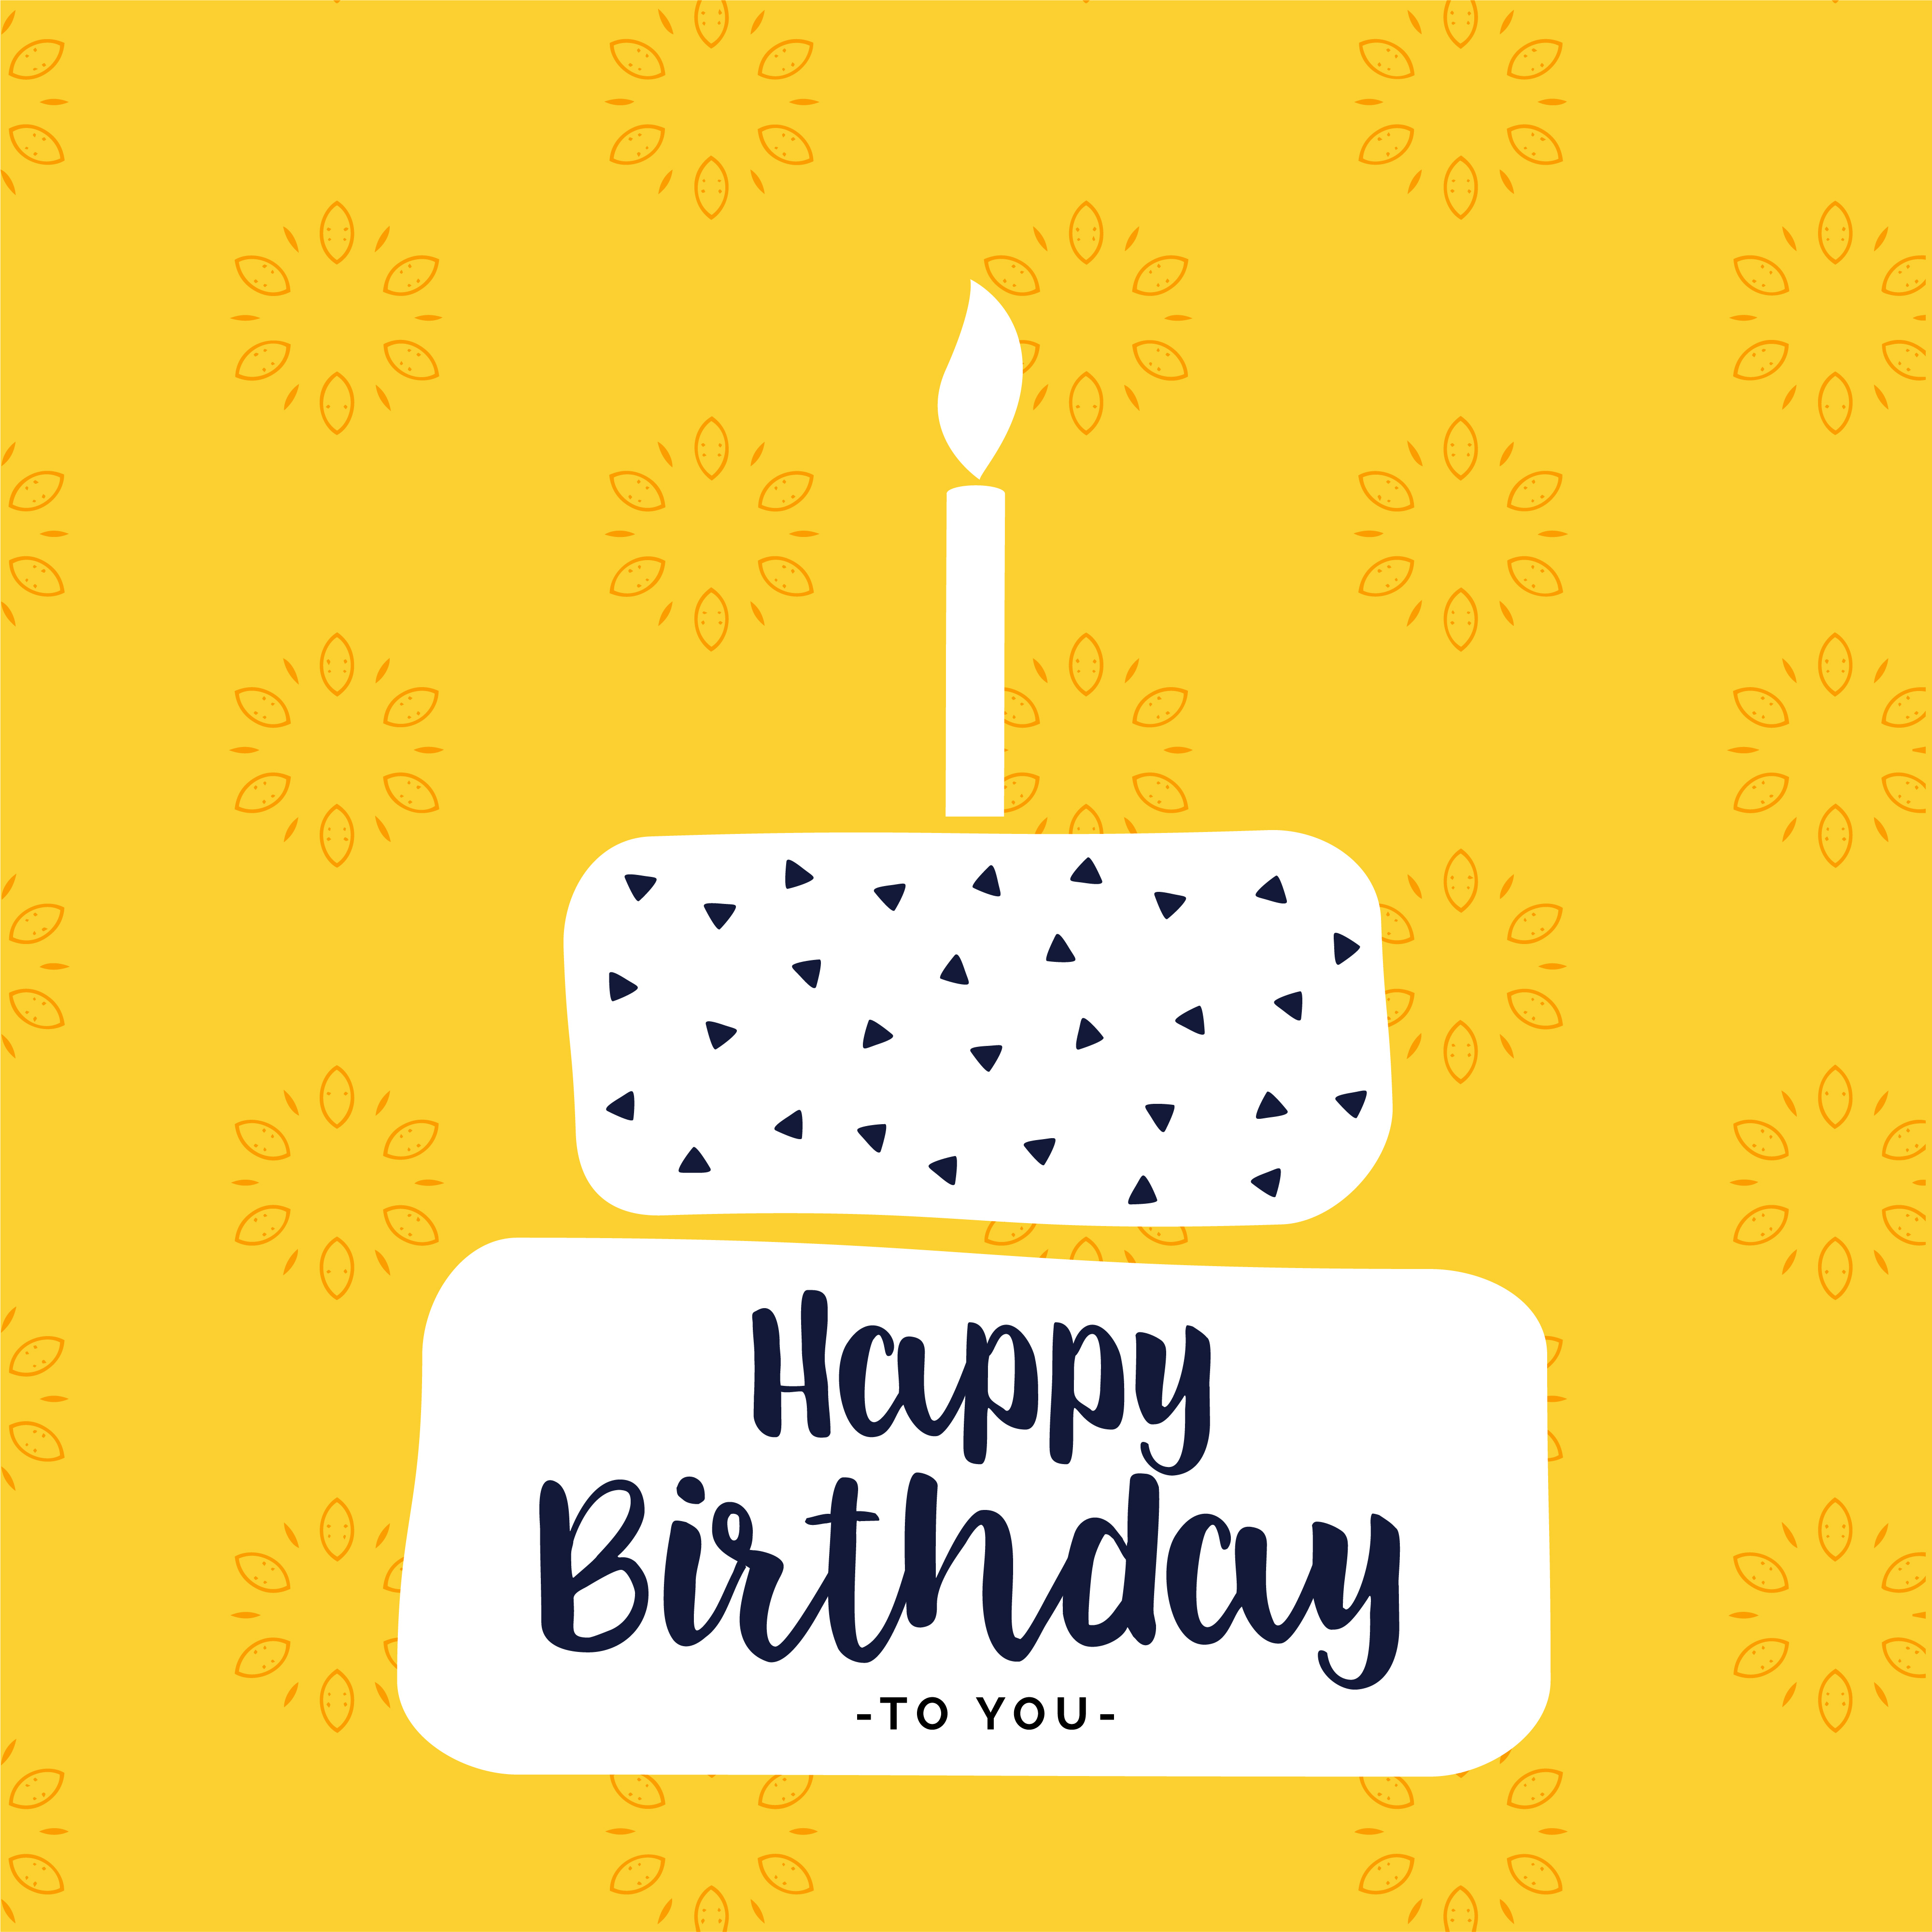 Happy Bithday Card Design With Flat White Cake Shape Download Free